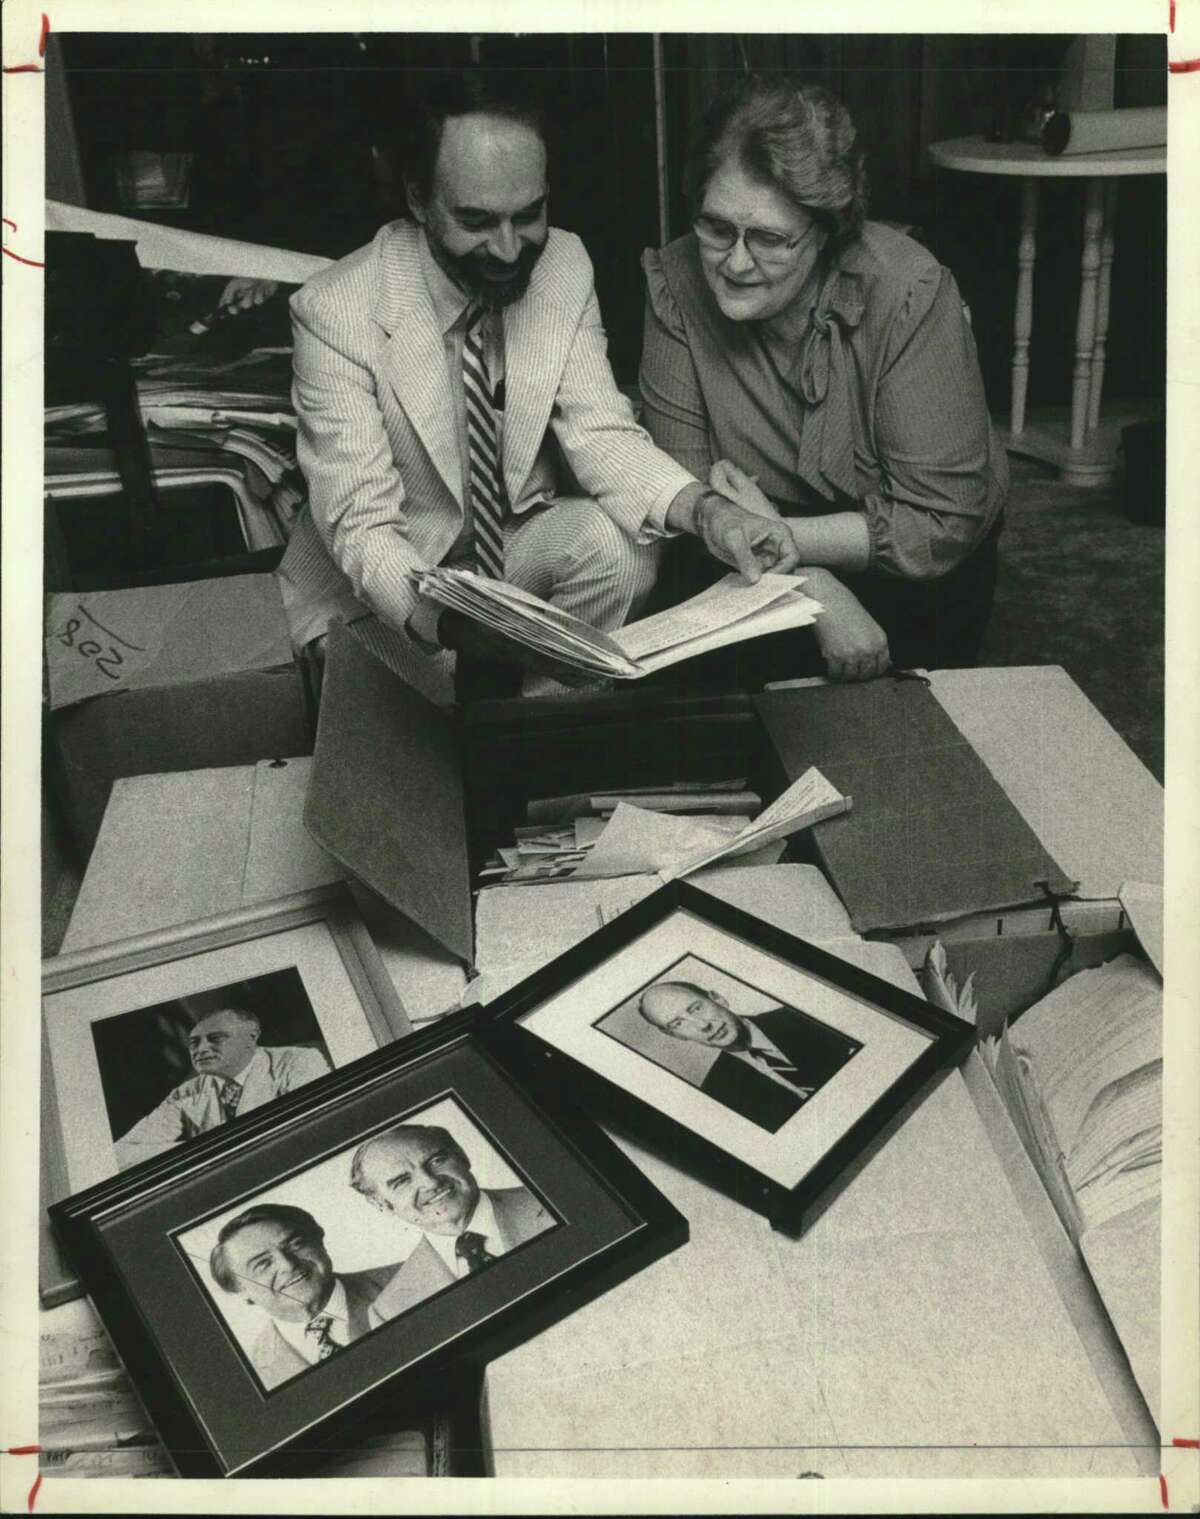 Billie Carr, Democratic Political Official. Billie Carr, right, and Rice University's Chandler Davidson examined some of Ms. Carr's papers and some of the historic photos shown here that will be included in a Rice library planned for students of politics.